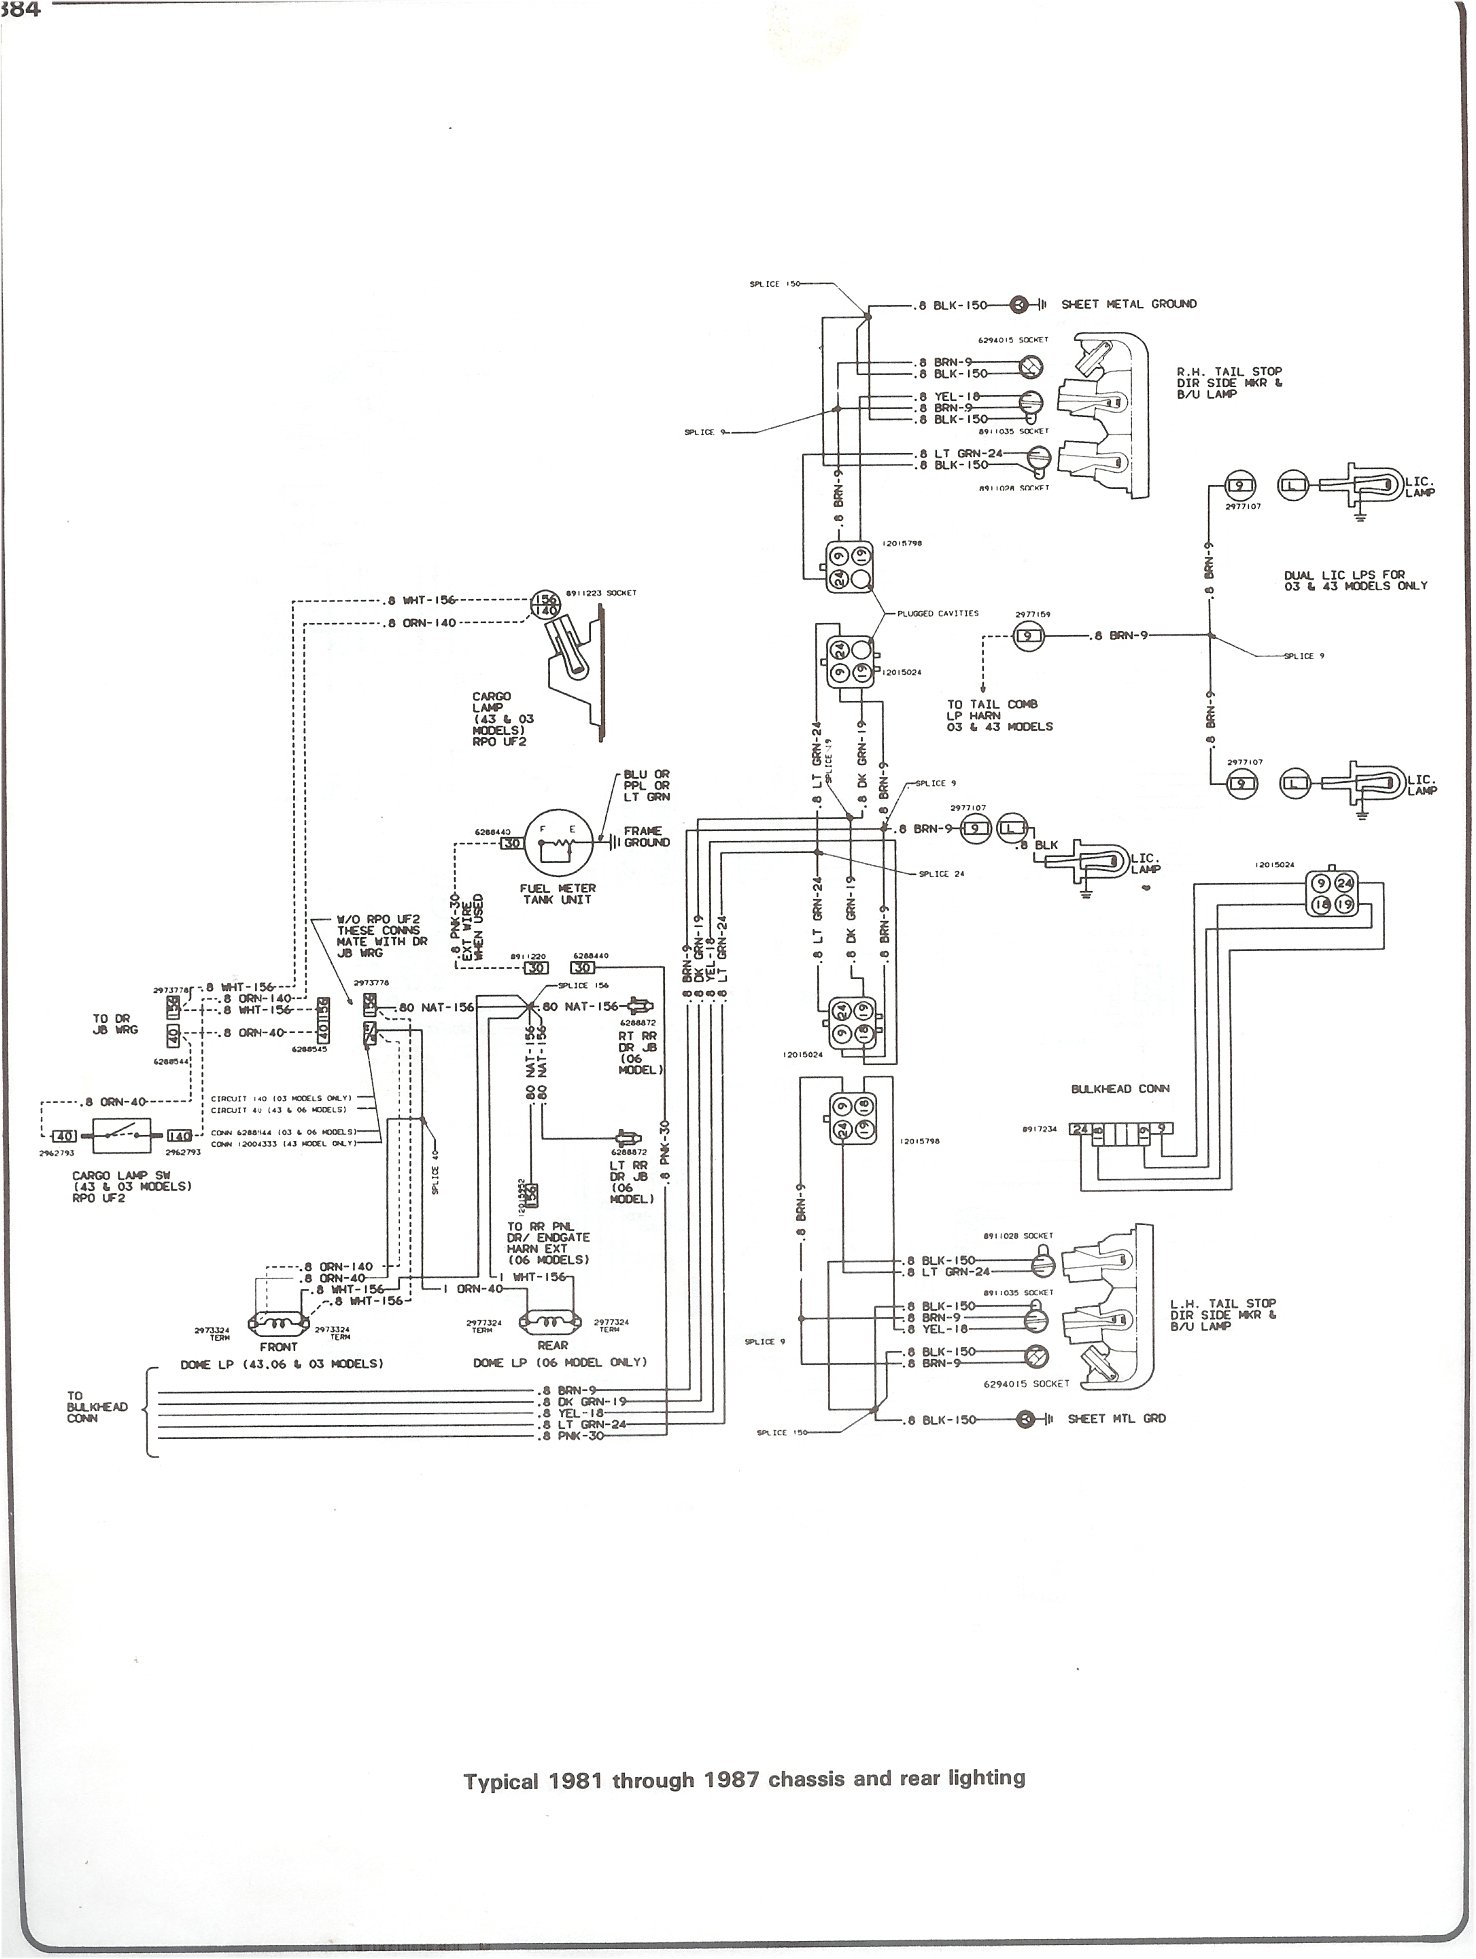 81 87_chass_rr_light complete 73 87 wiring diagrams 1985 chevy c10 fuse box diagram at mifinder.co